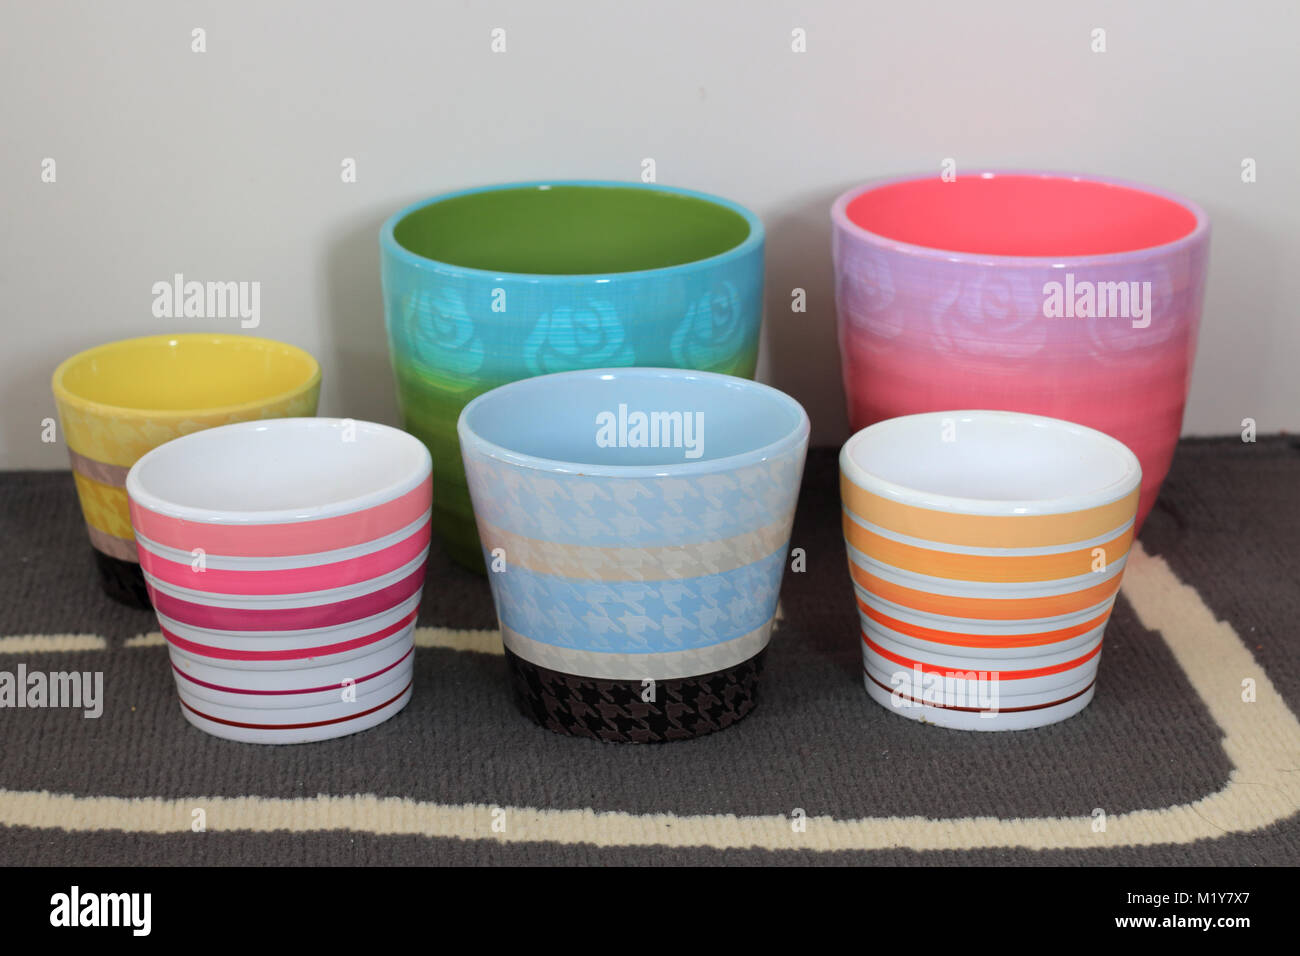 Colourful ceramic pot plants in different sizes - Stock Image